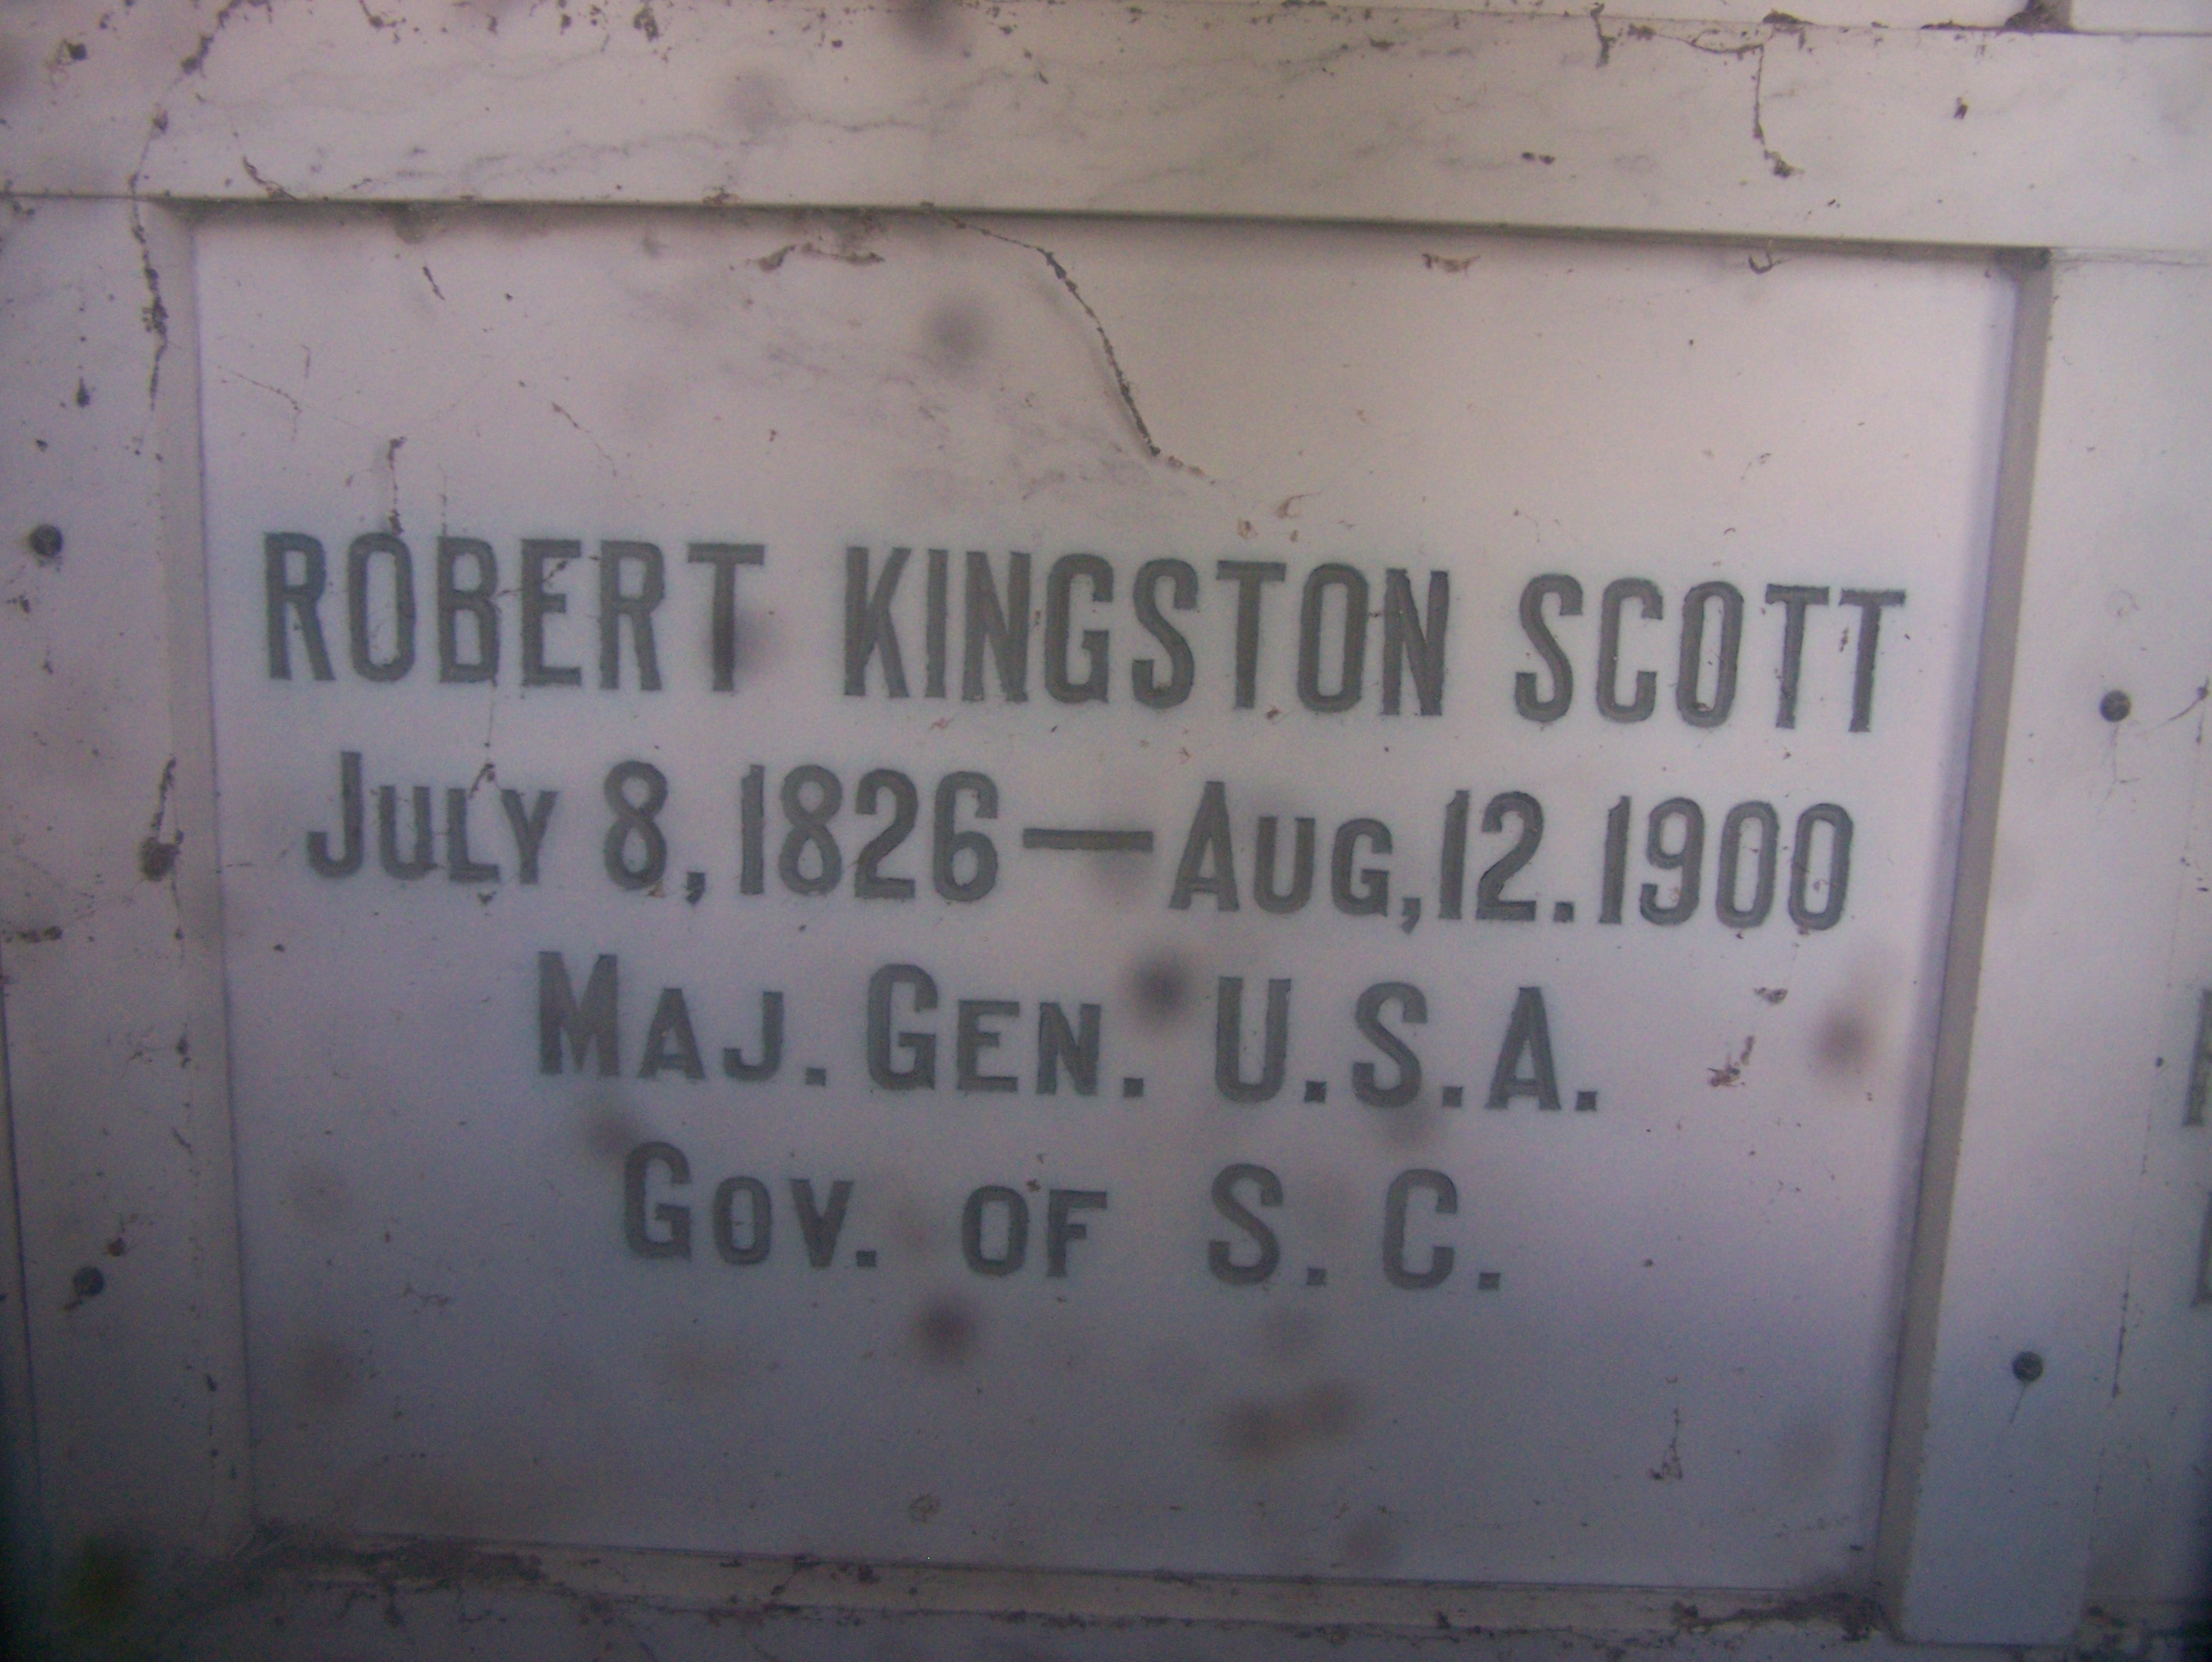 Robert Kingston Scott